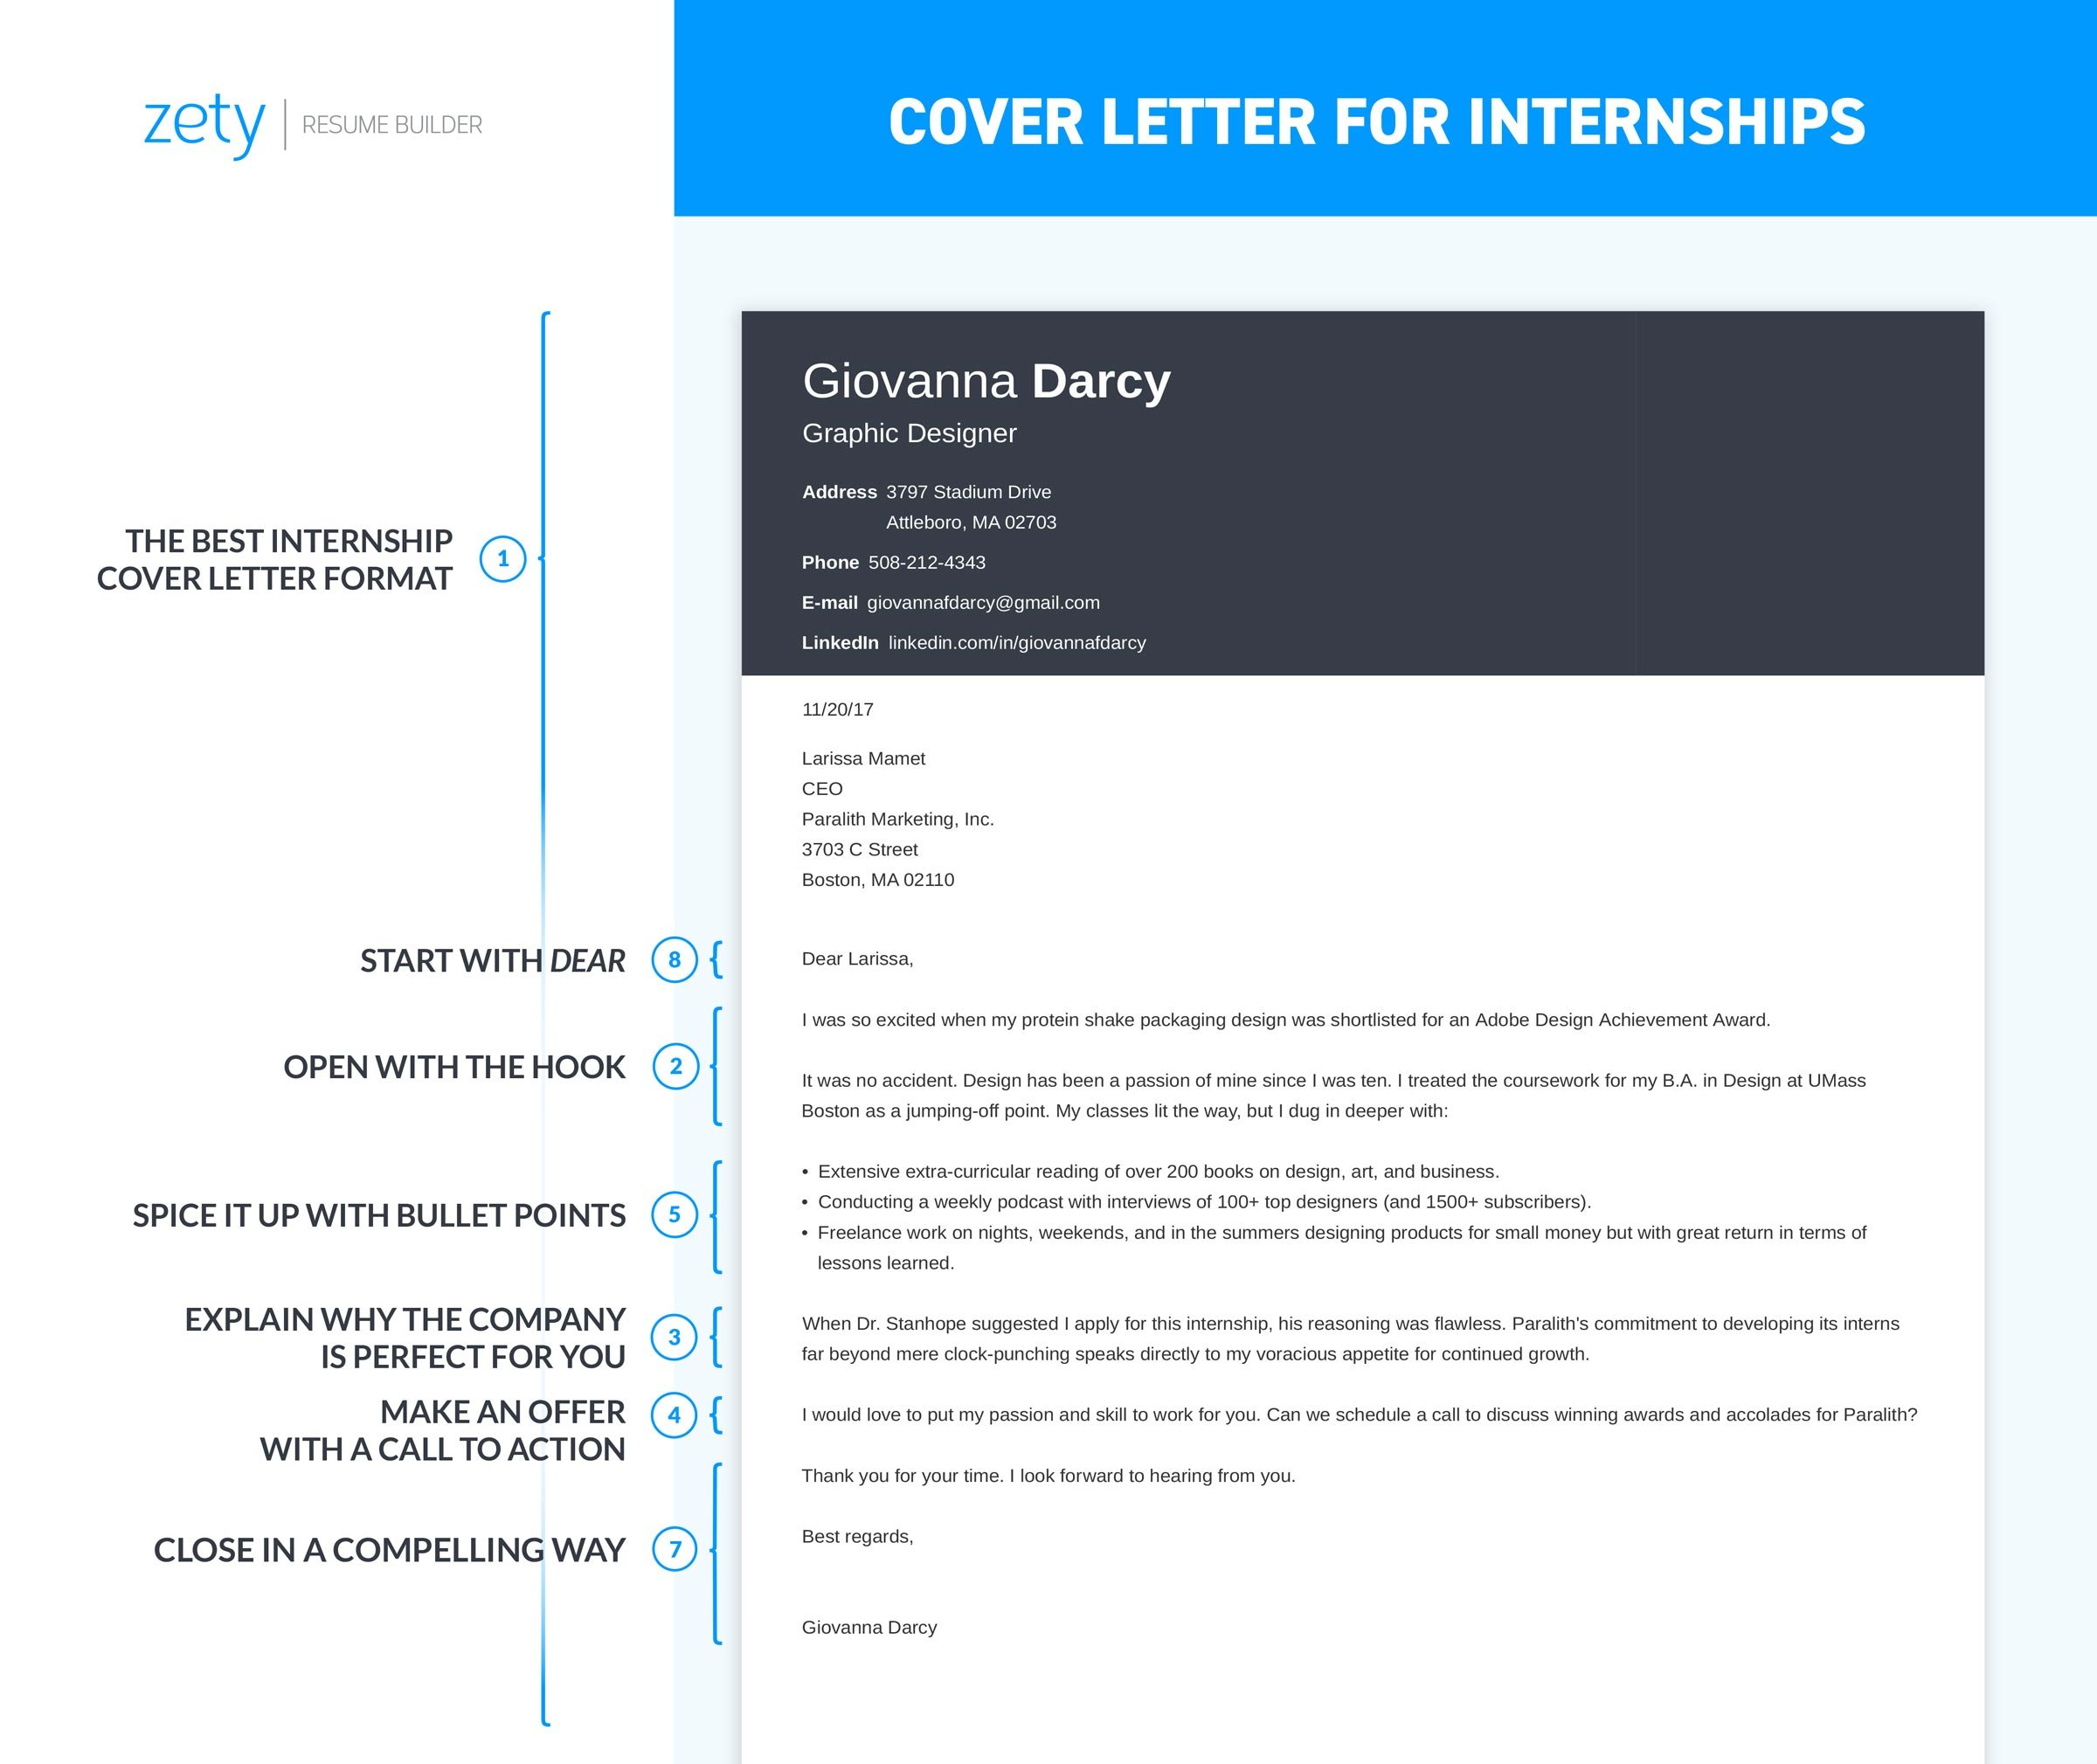 infographic about how to write a cover letter for internship